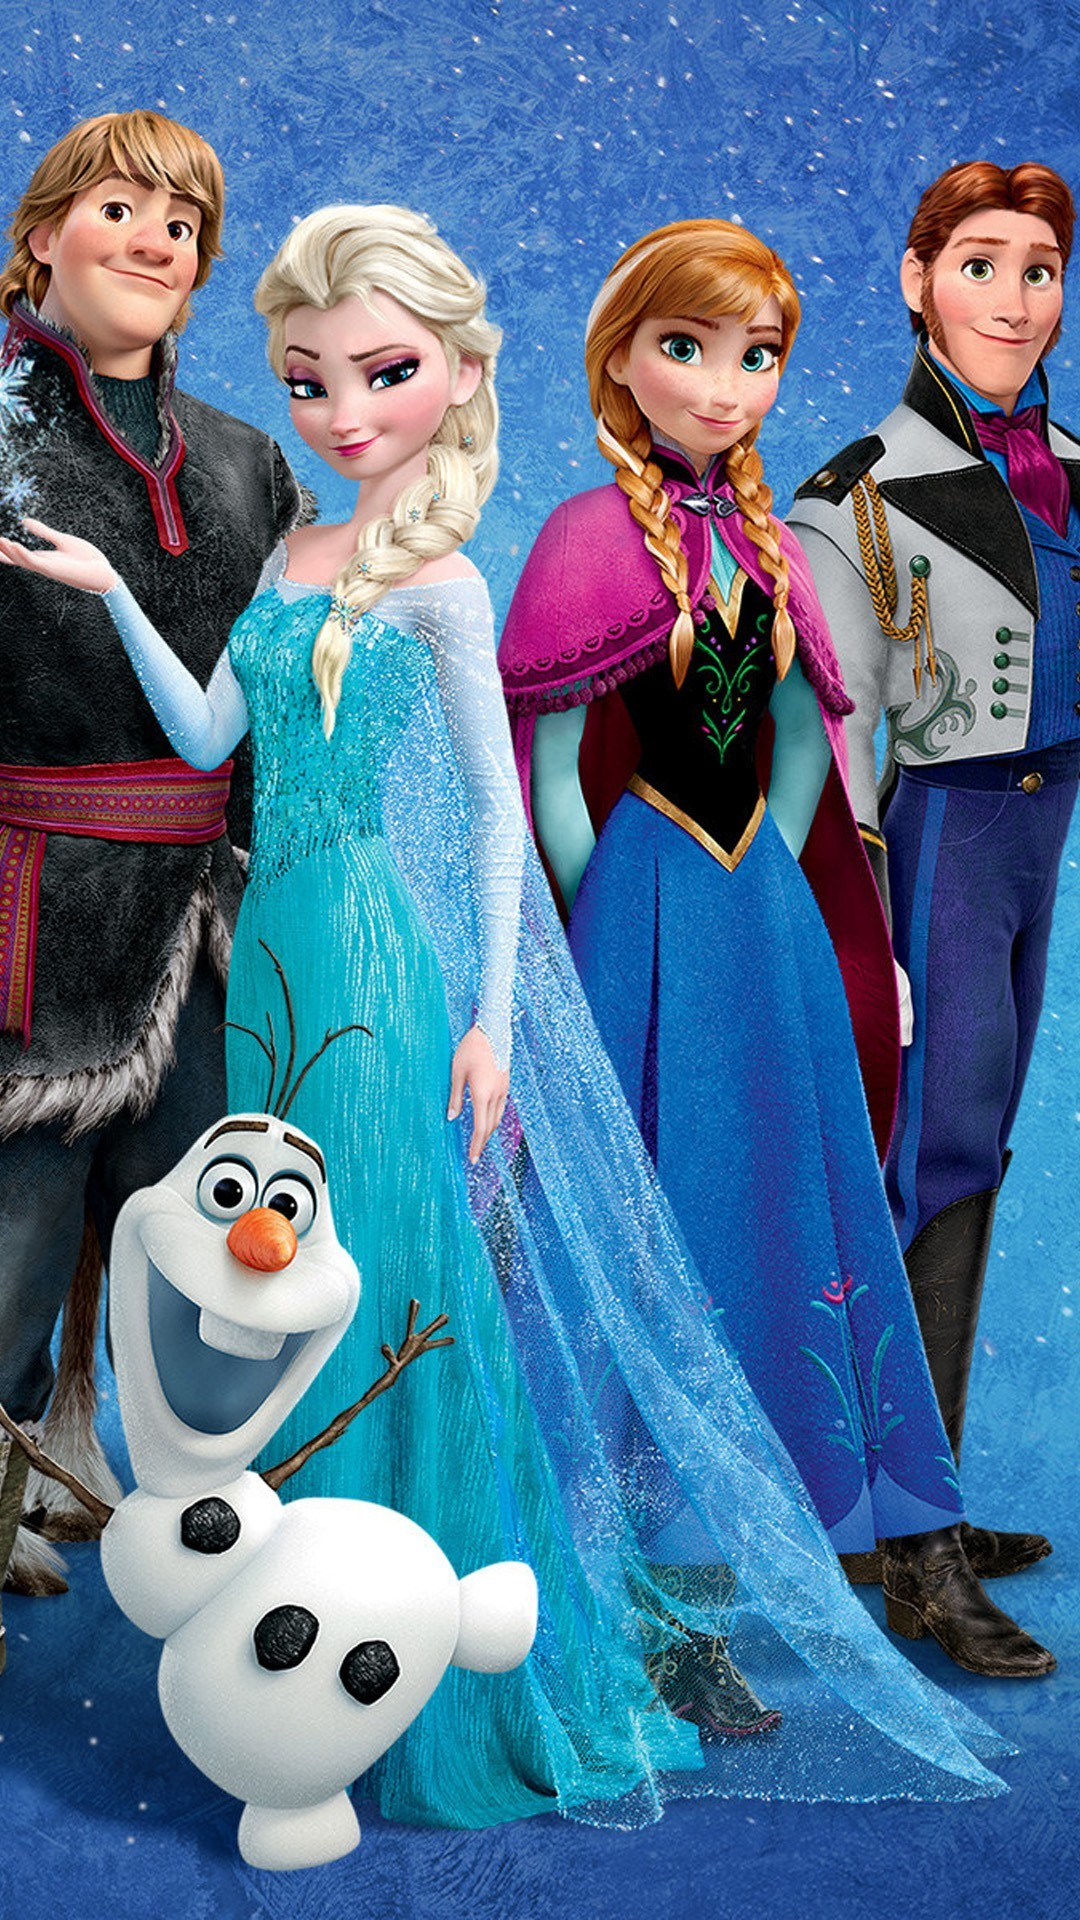 Olaf Frozen Wallpaper Quotes Elsa And Jack Frost Wallpapers 79 Images